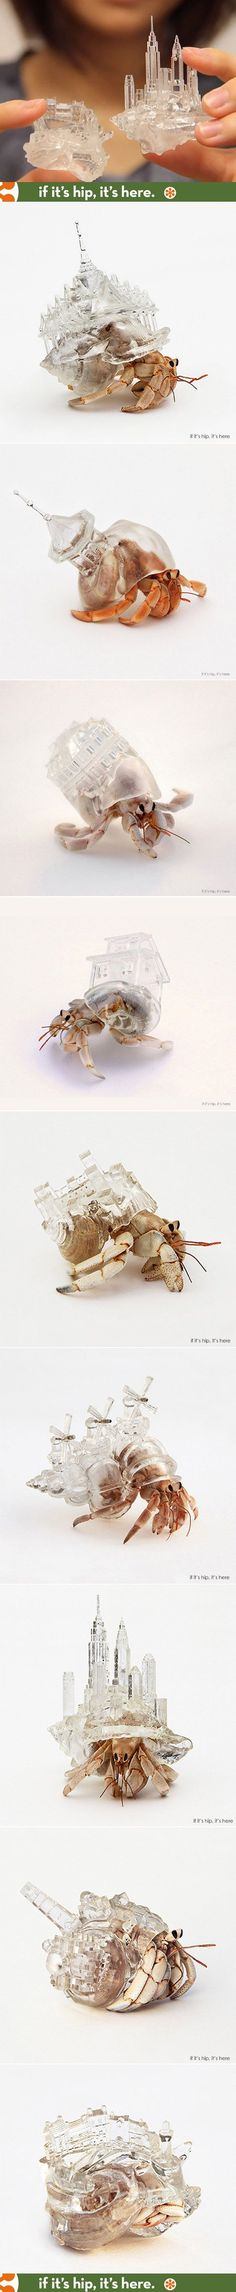 Artist Aki Inomata's 3D-printed acrylic shells for the hermit crab. See the entire project at www.ifitshipitshe... <<< omg tell me you're just joking.... Holy [not so holy word] #3dprintingprojects